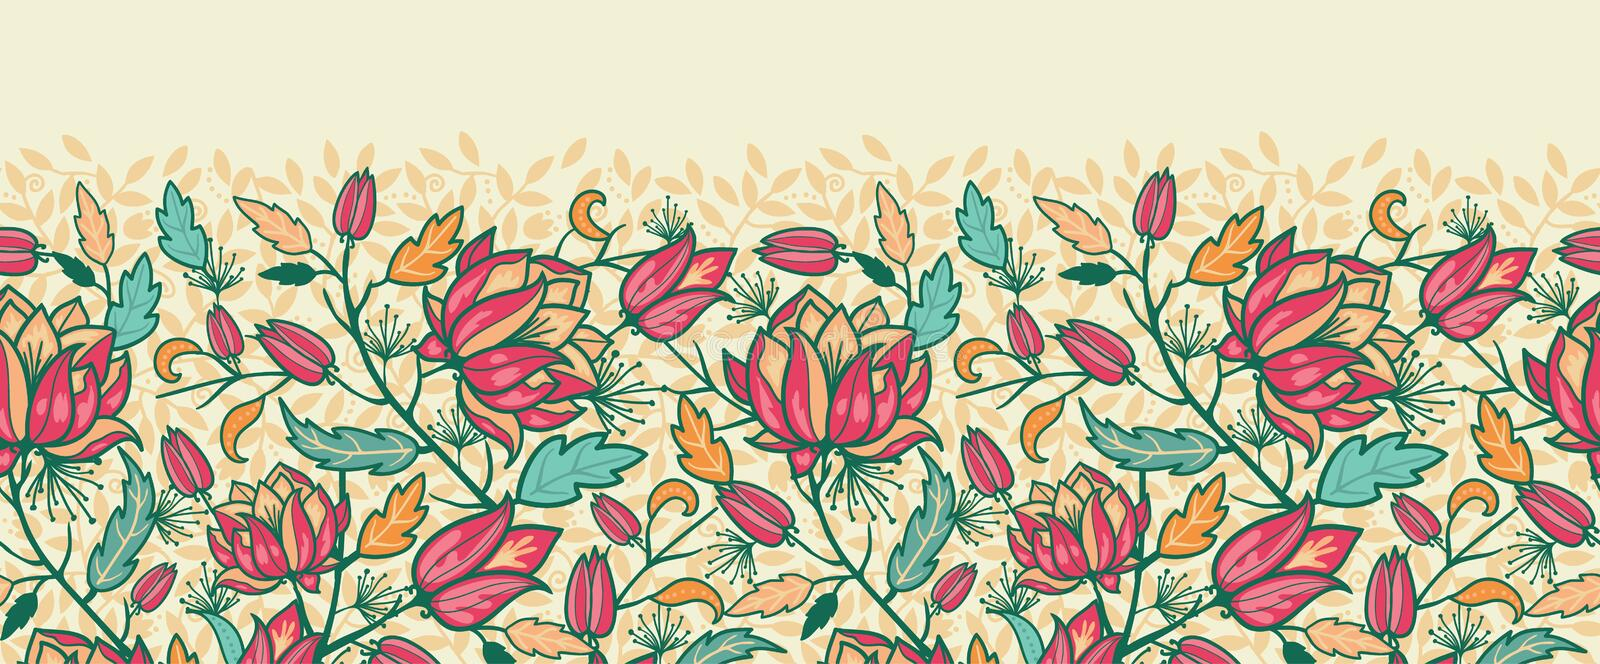 Download Colorful Flowers And Leaves Horizontal Seamless Stock Vector - Illustration: 30853483